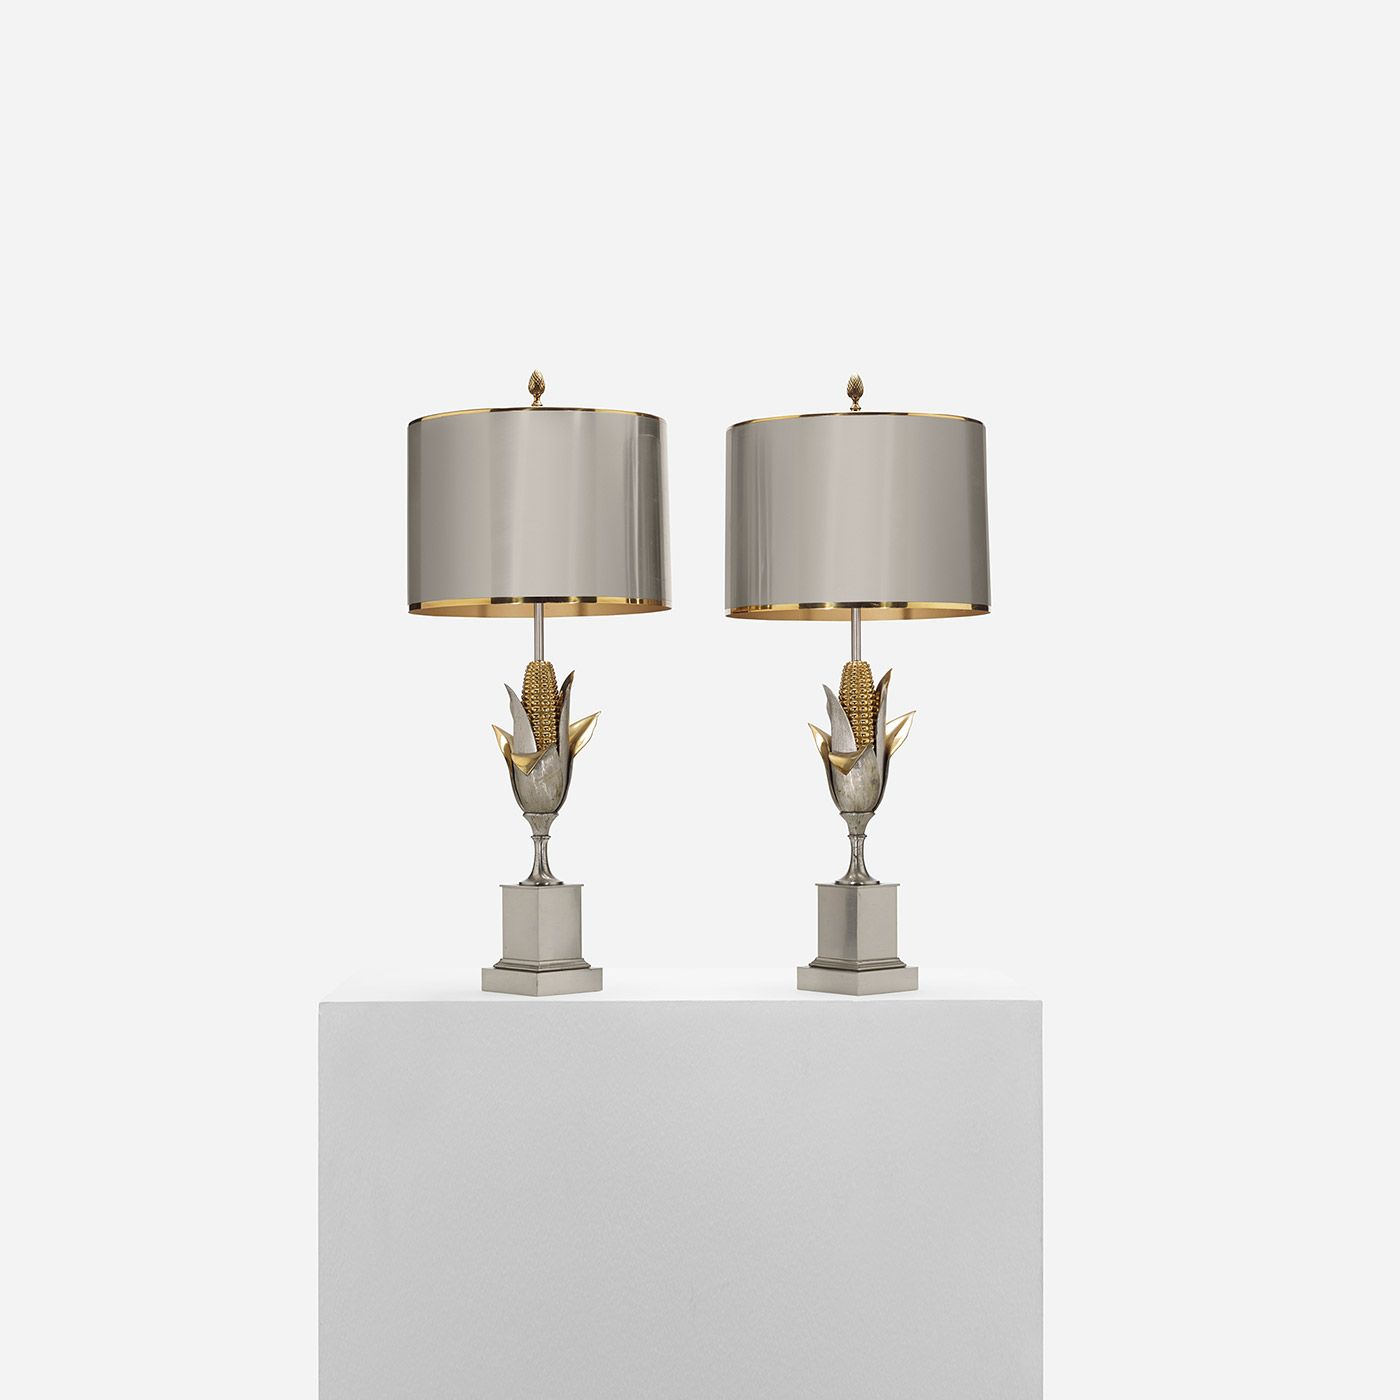 Marvelous 259 Maison Charles Table Lamps Pair Living Interior Design Ideas Inesswwsoteloinfo